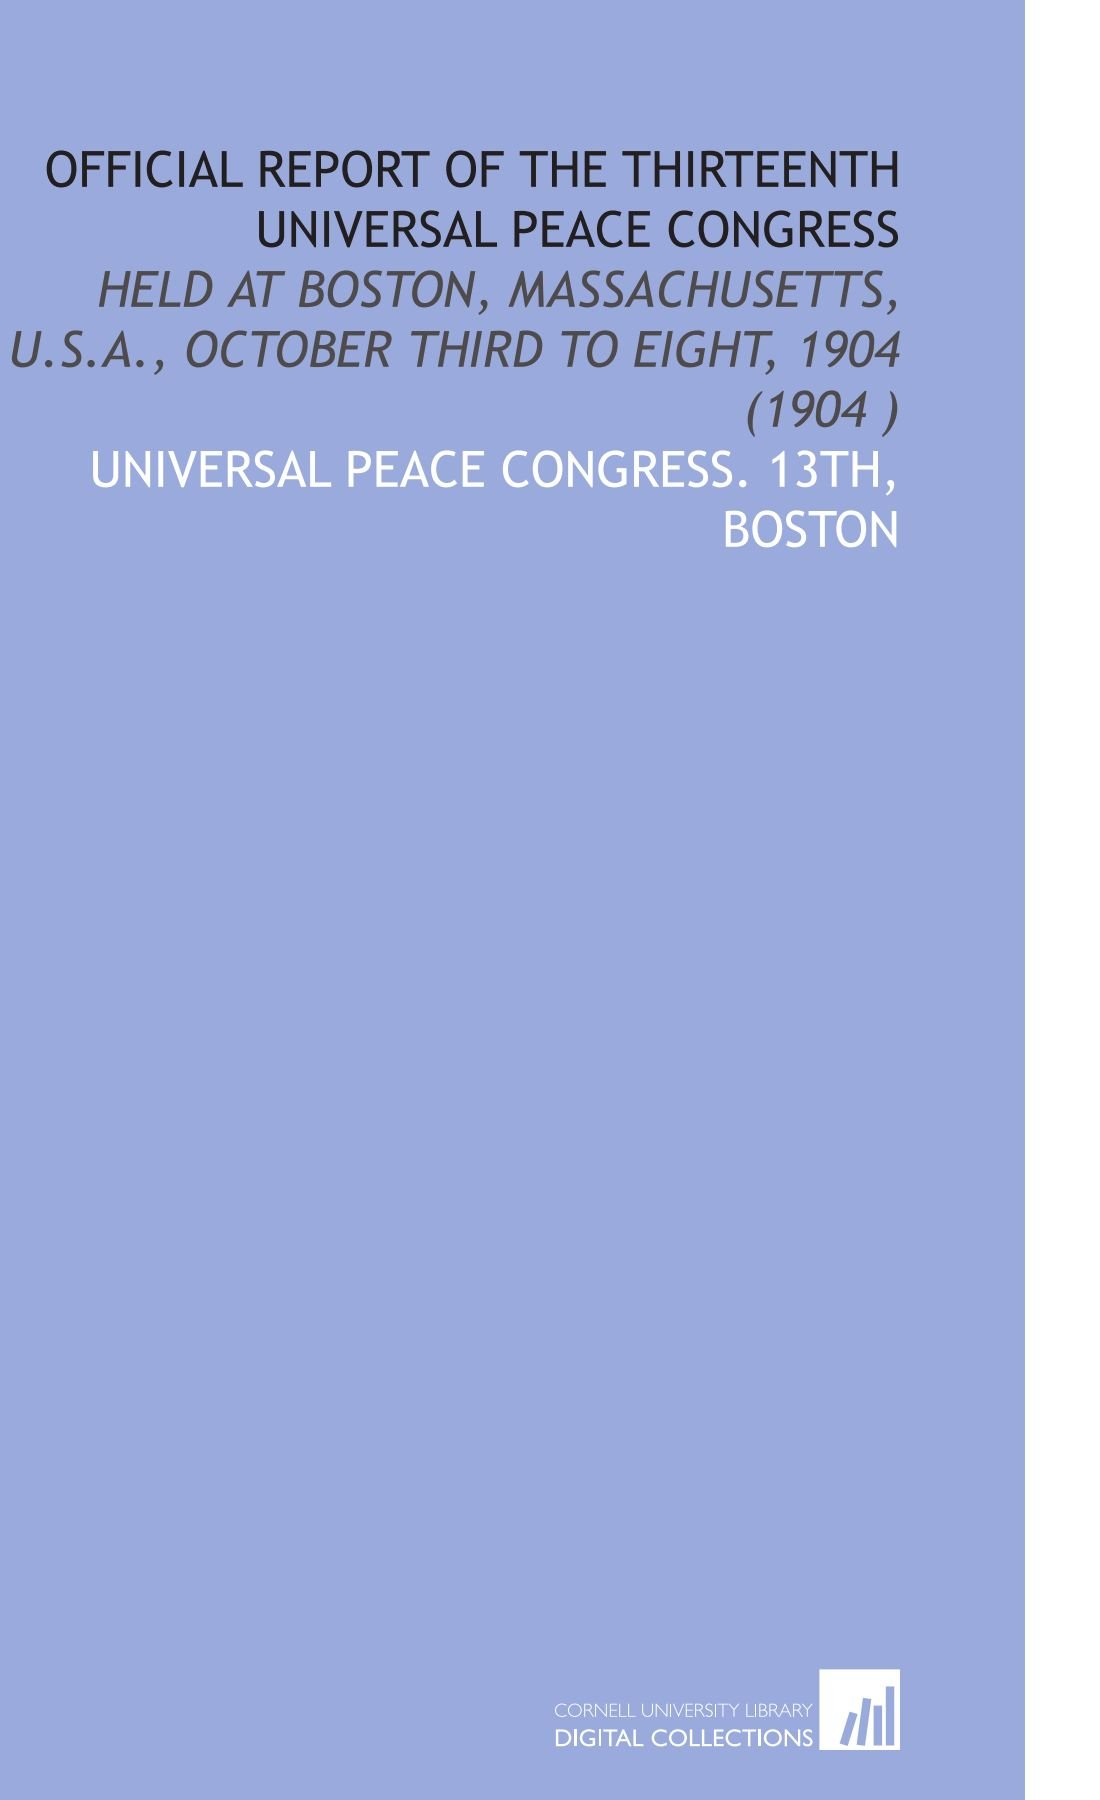 Download Official Report of the Thirteenth Universal Peace Congress: Held at Boston, Massachusetts, U.S.a., October Third to Eight, 1904 (1904 ) PDF